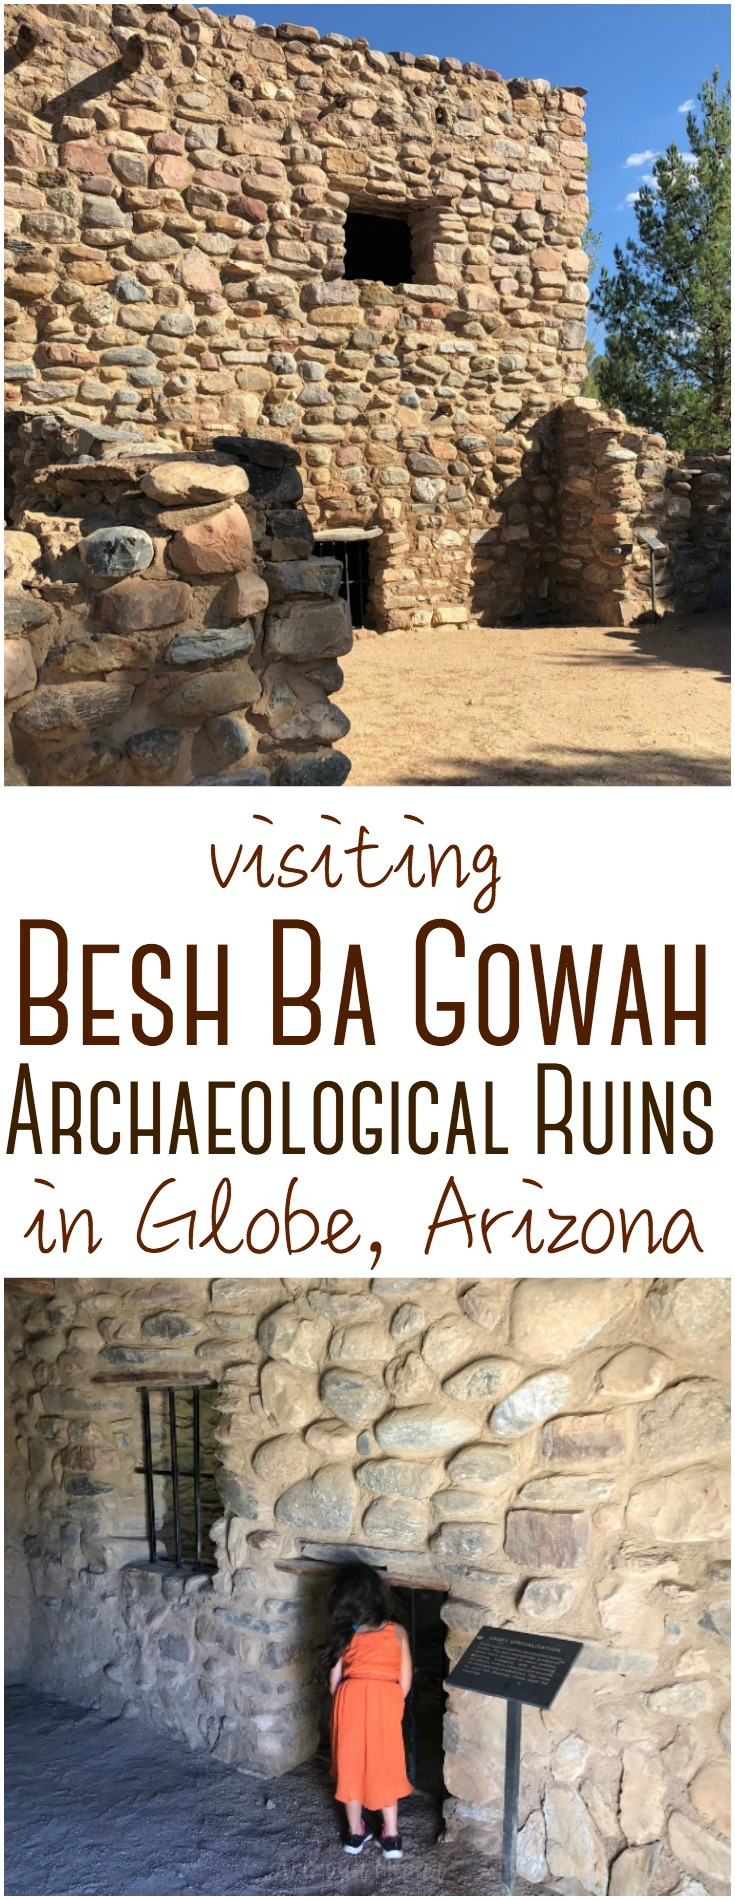 Besh Ba Gowah Archaeological Park and Museum is a prehistoric Salado masonry pueblo located one mile southwest of the city of Globe, Arizona.